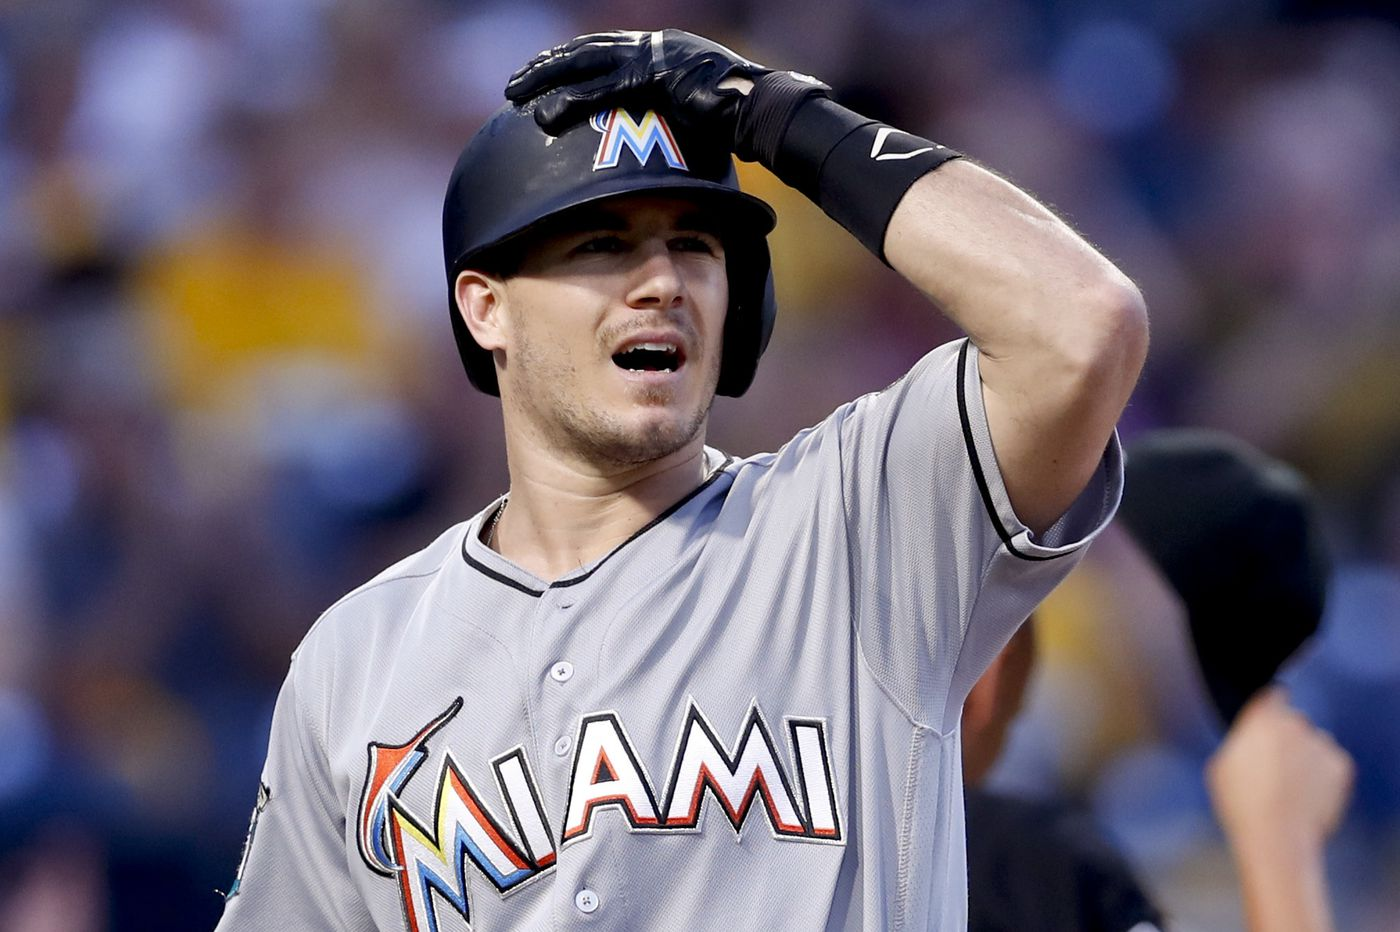 Major League Baseball  hot stove: Phillies acquire J.T. Realmuto from Marlins